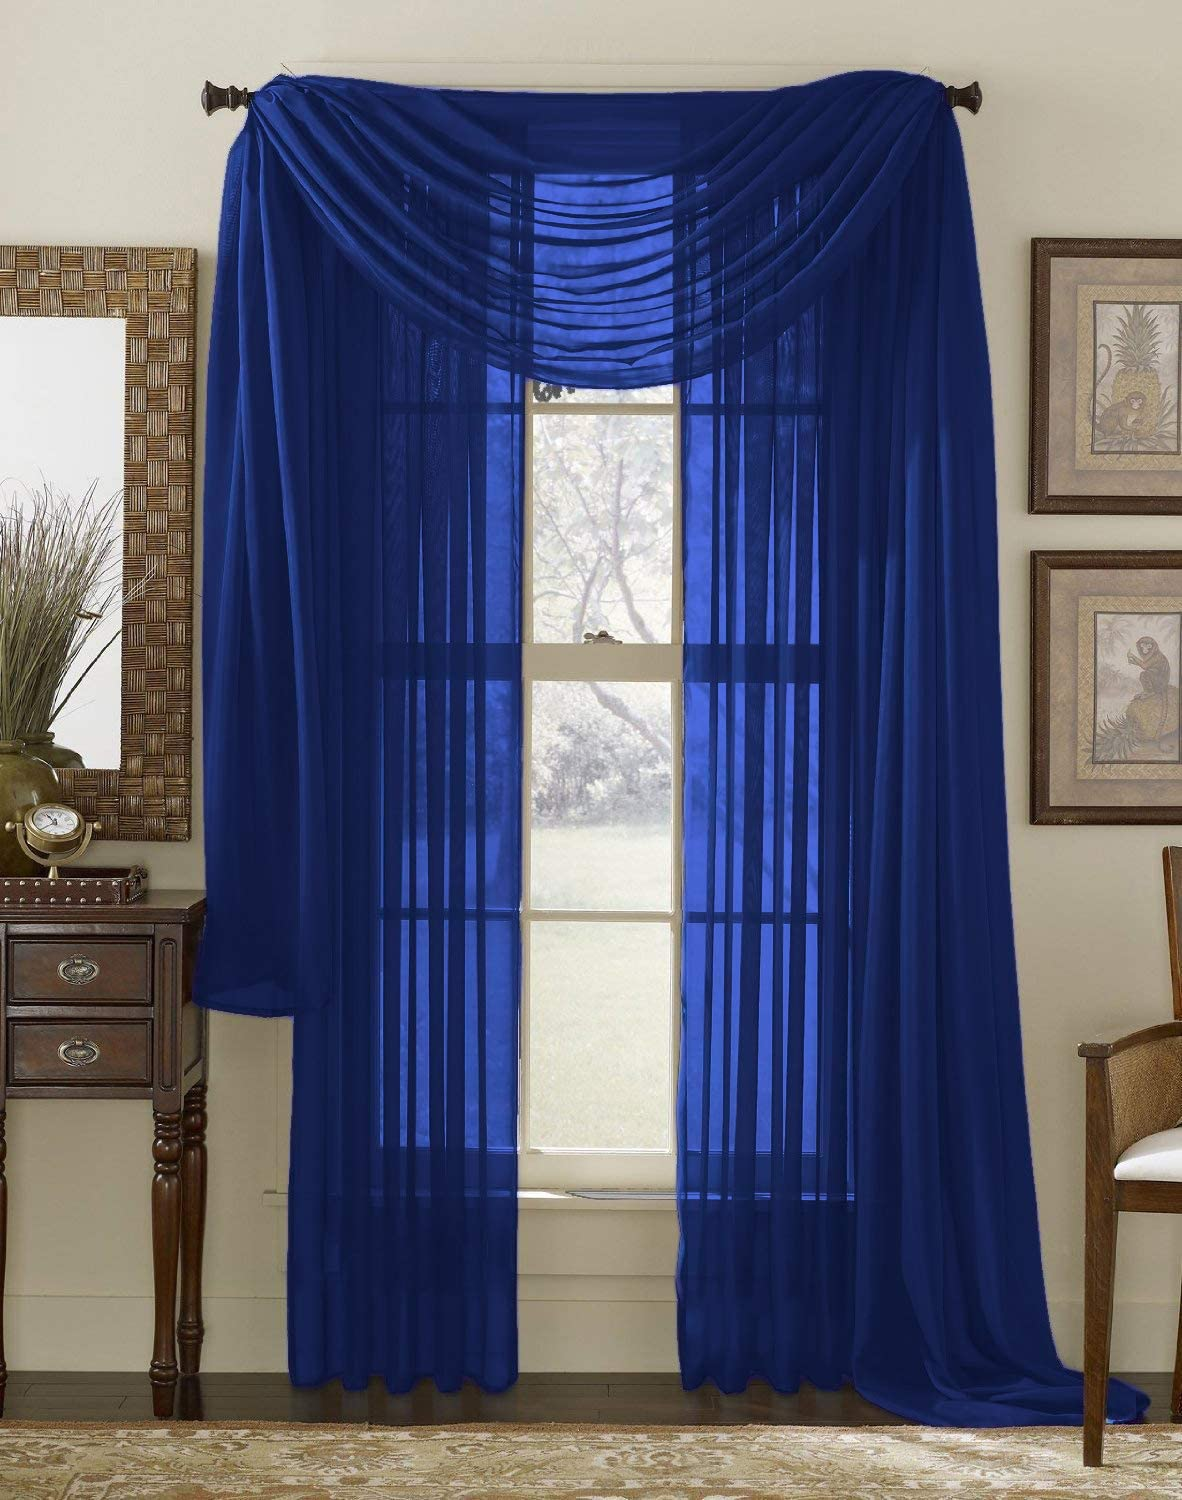 Interior Trends 3 Piece Fully Cheap SALE Start Sheer Stitched Panel Windo Ranking TOP8 Curtain